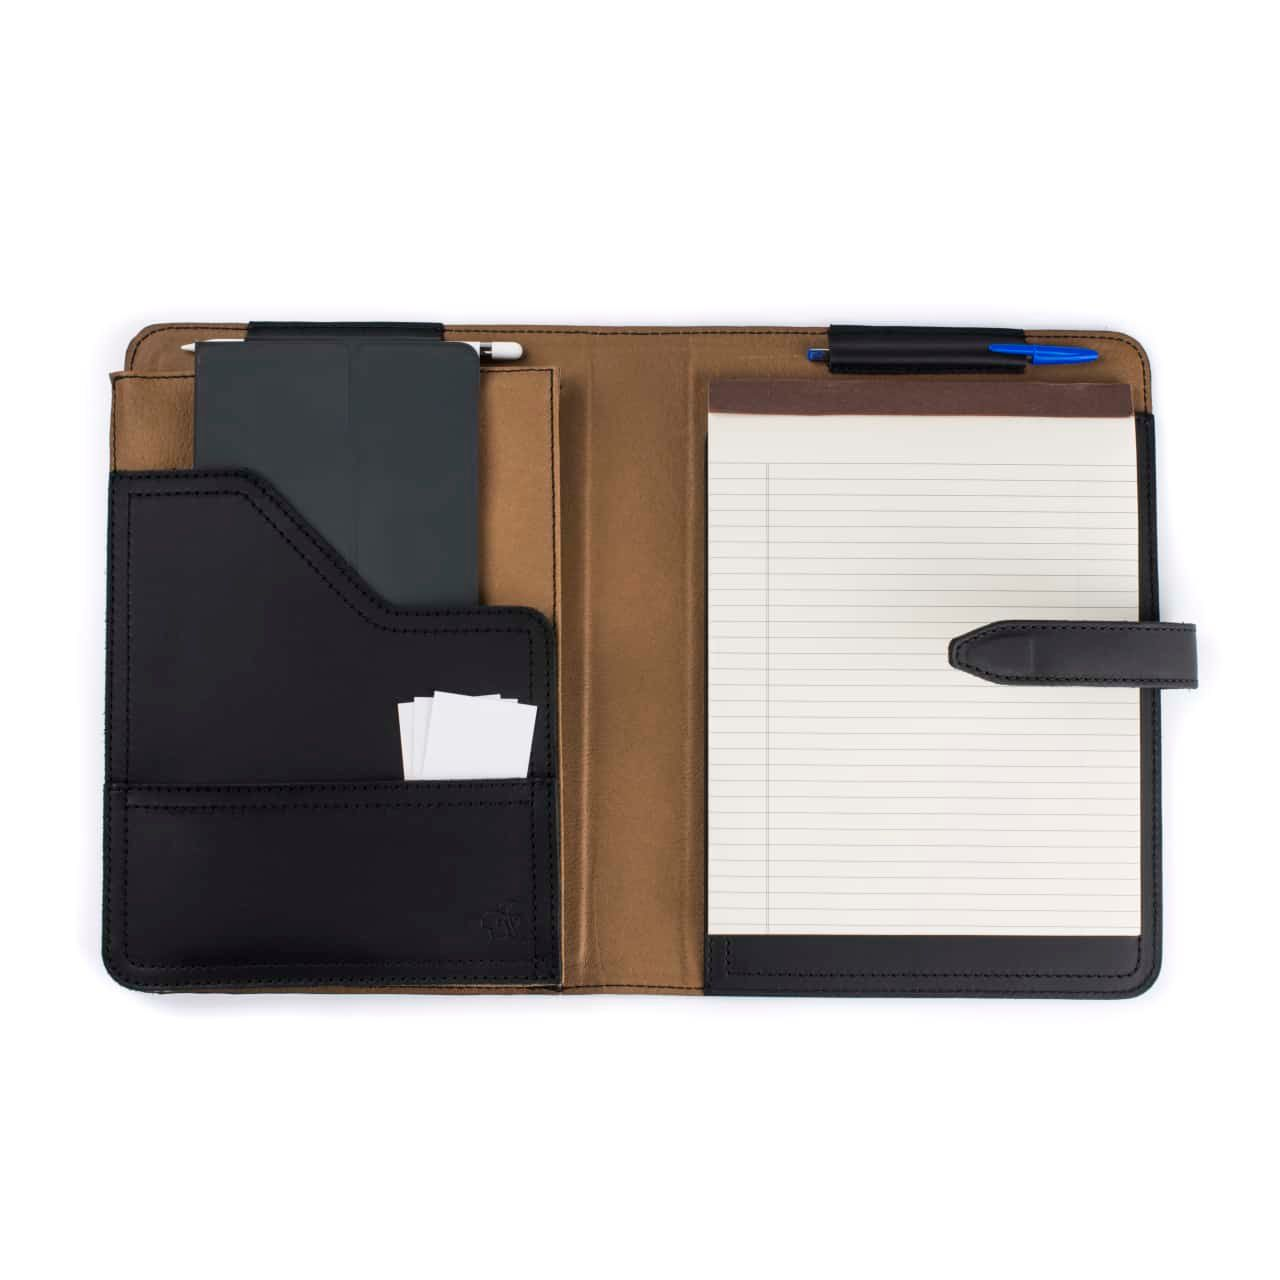 Leather Tablet Notepad Holder Open with Notepad and Pens in the Color Black